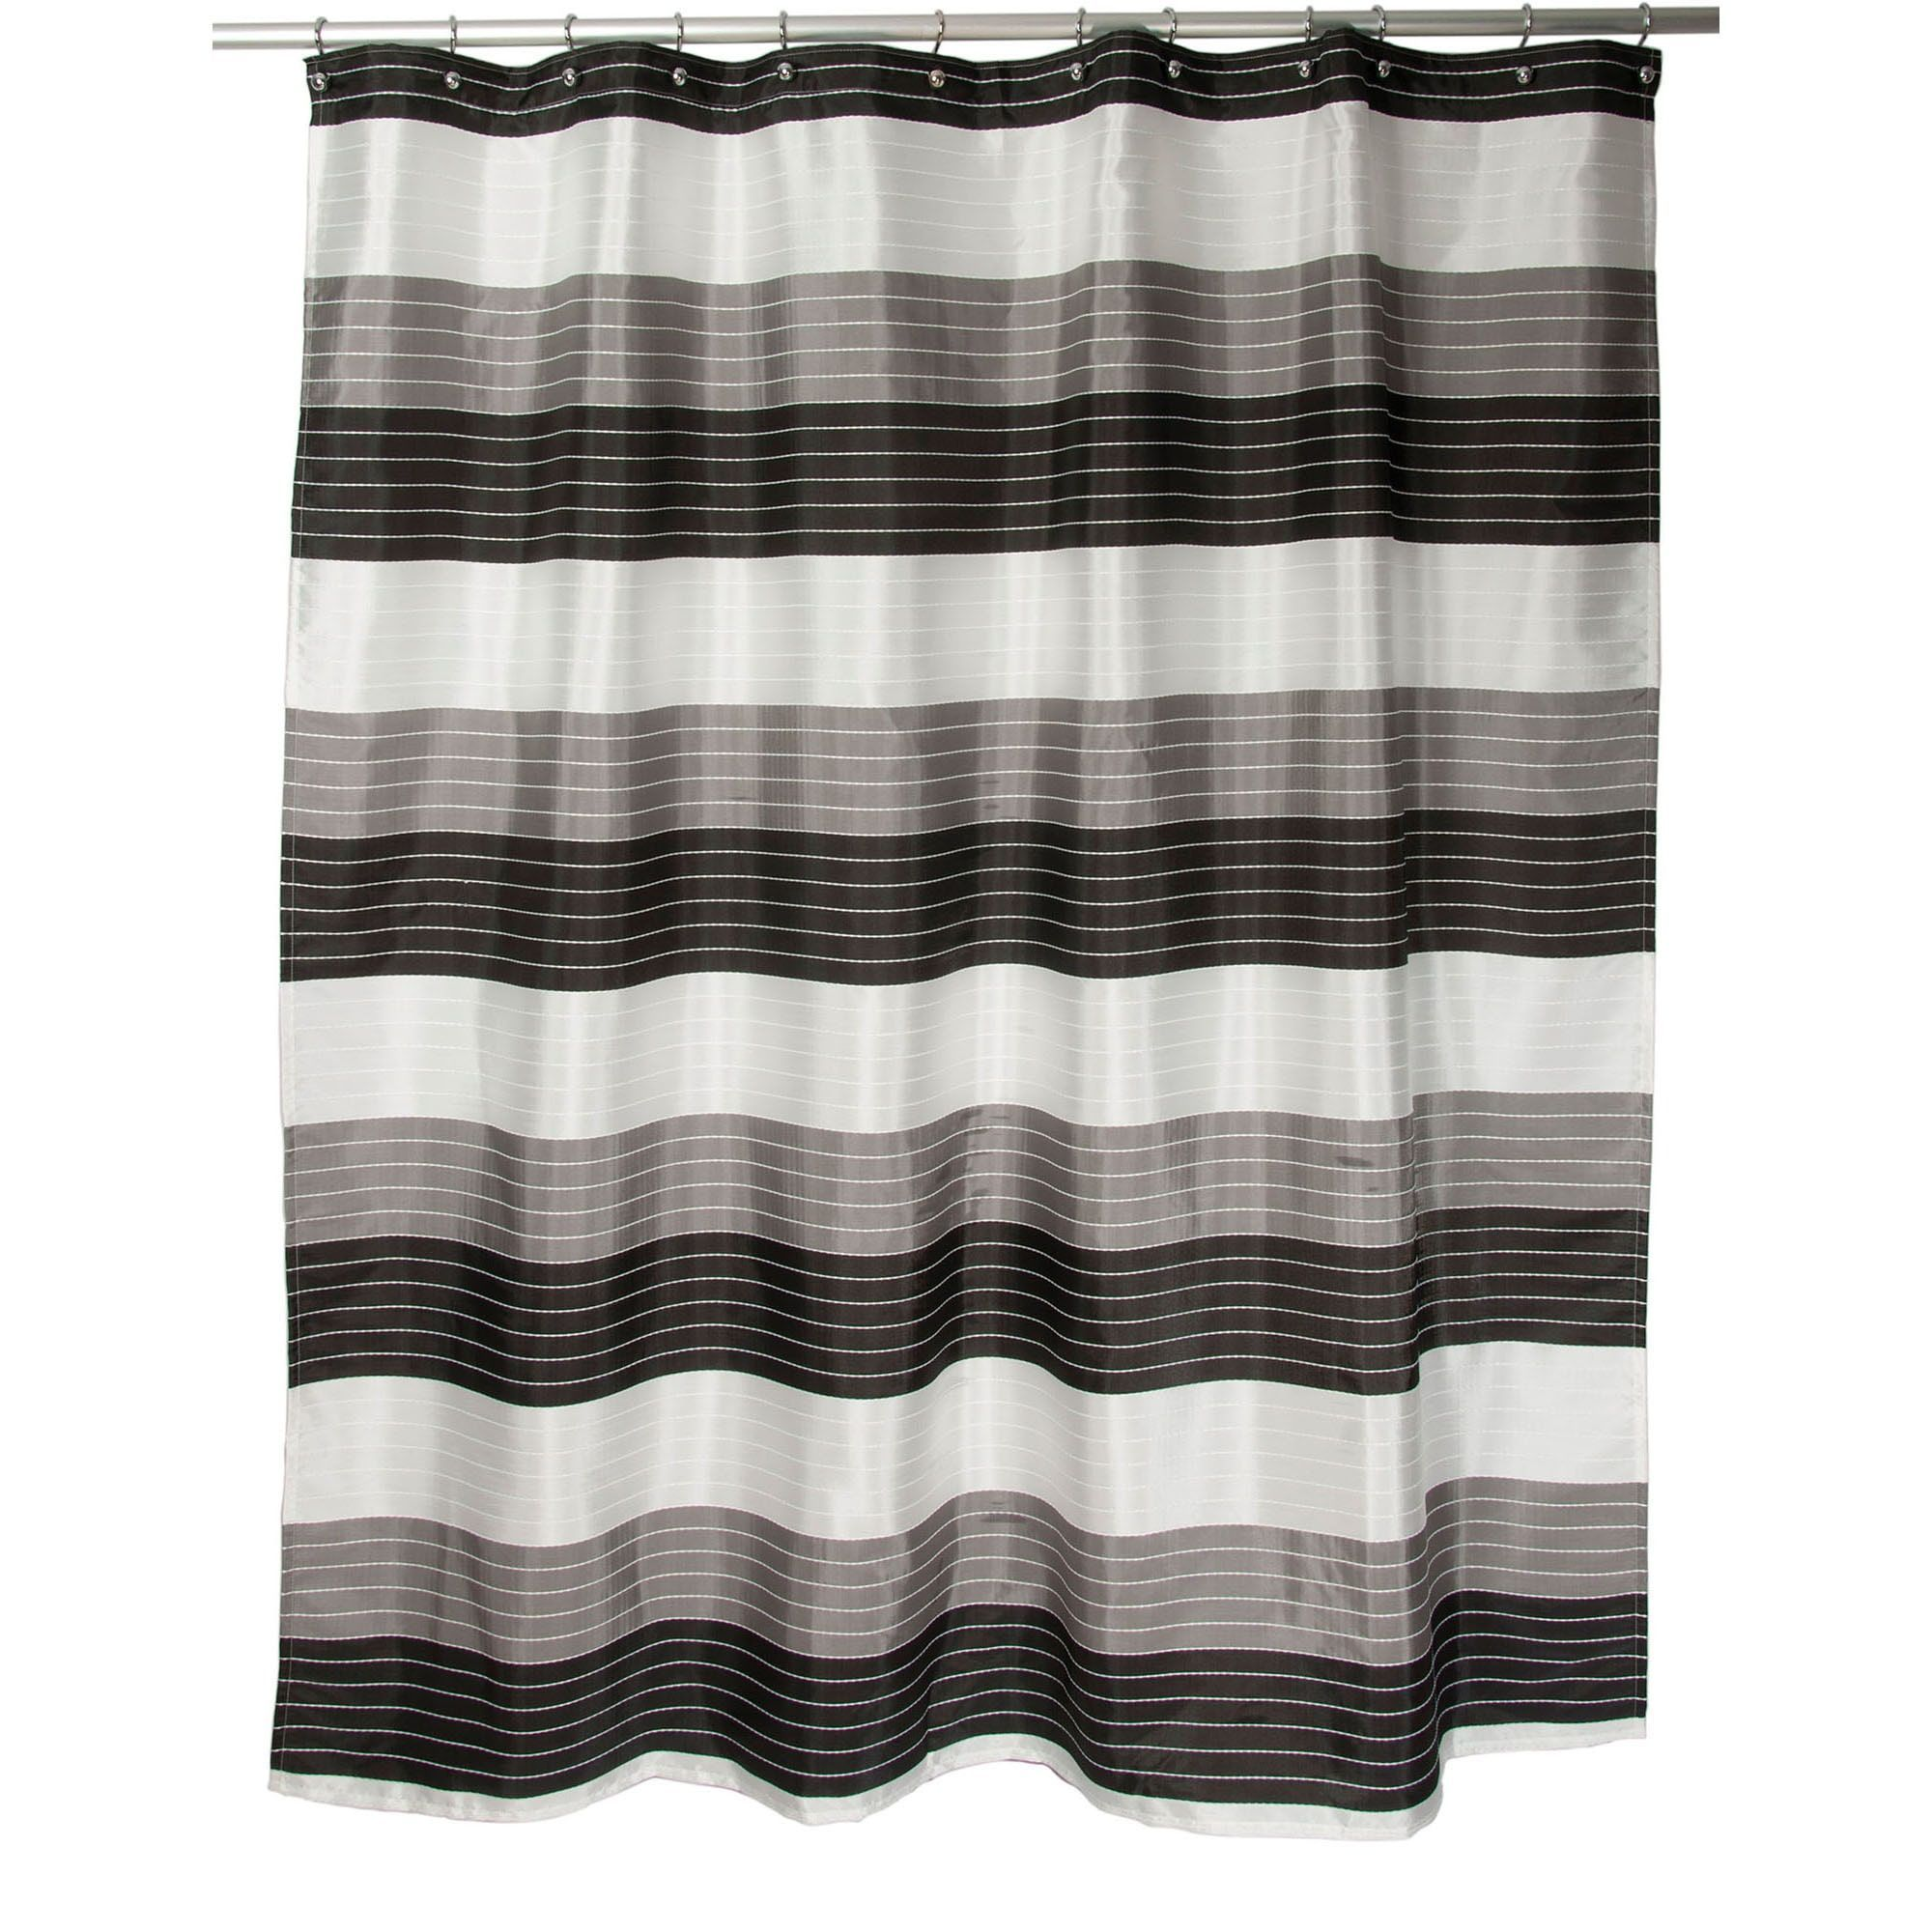 Famous Home Ambrosi Shower Curtain Dimensions 70 X 72 Color